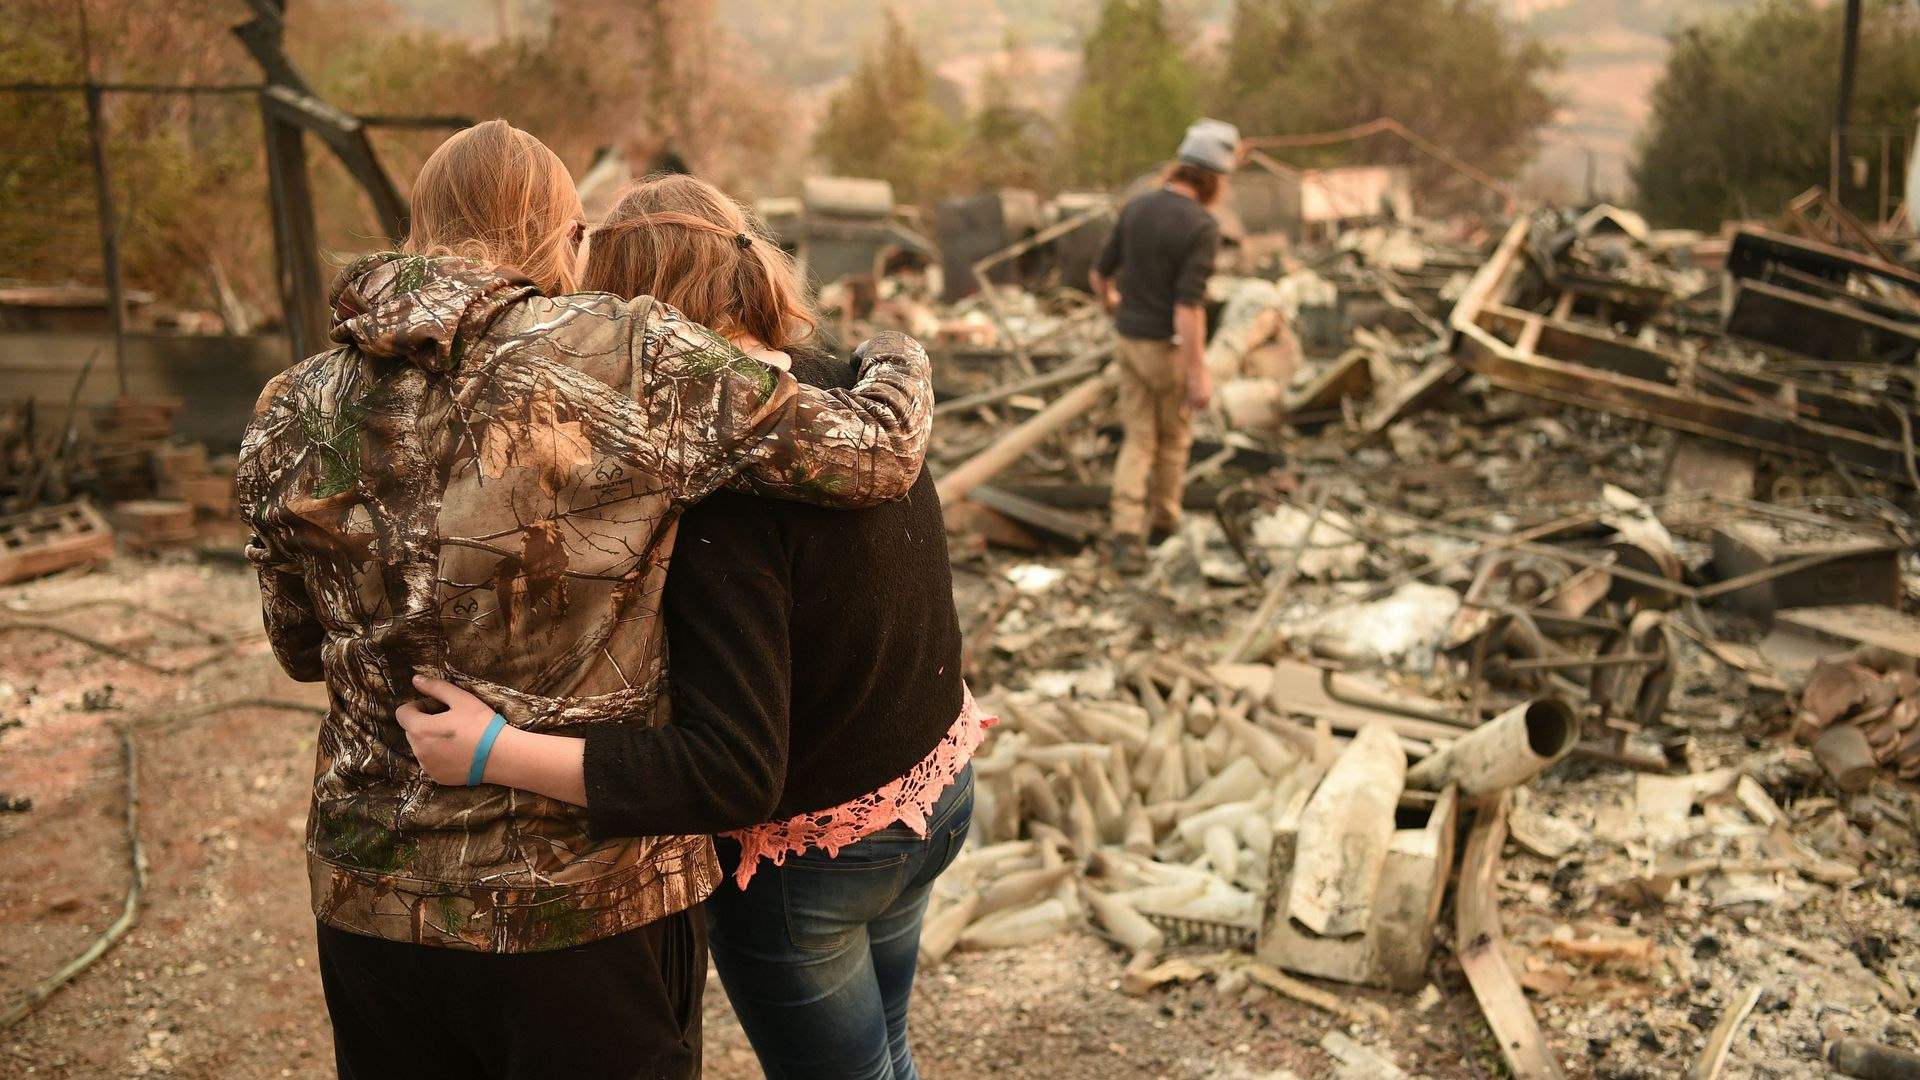 Victims of the Camp Fire in Paradise, California last November.